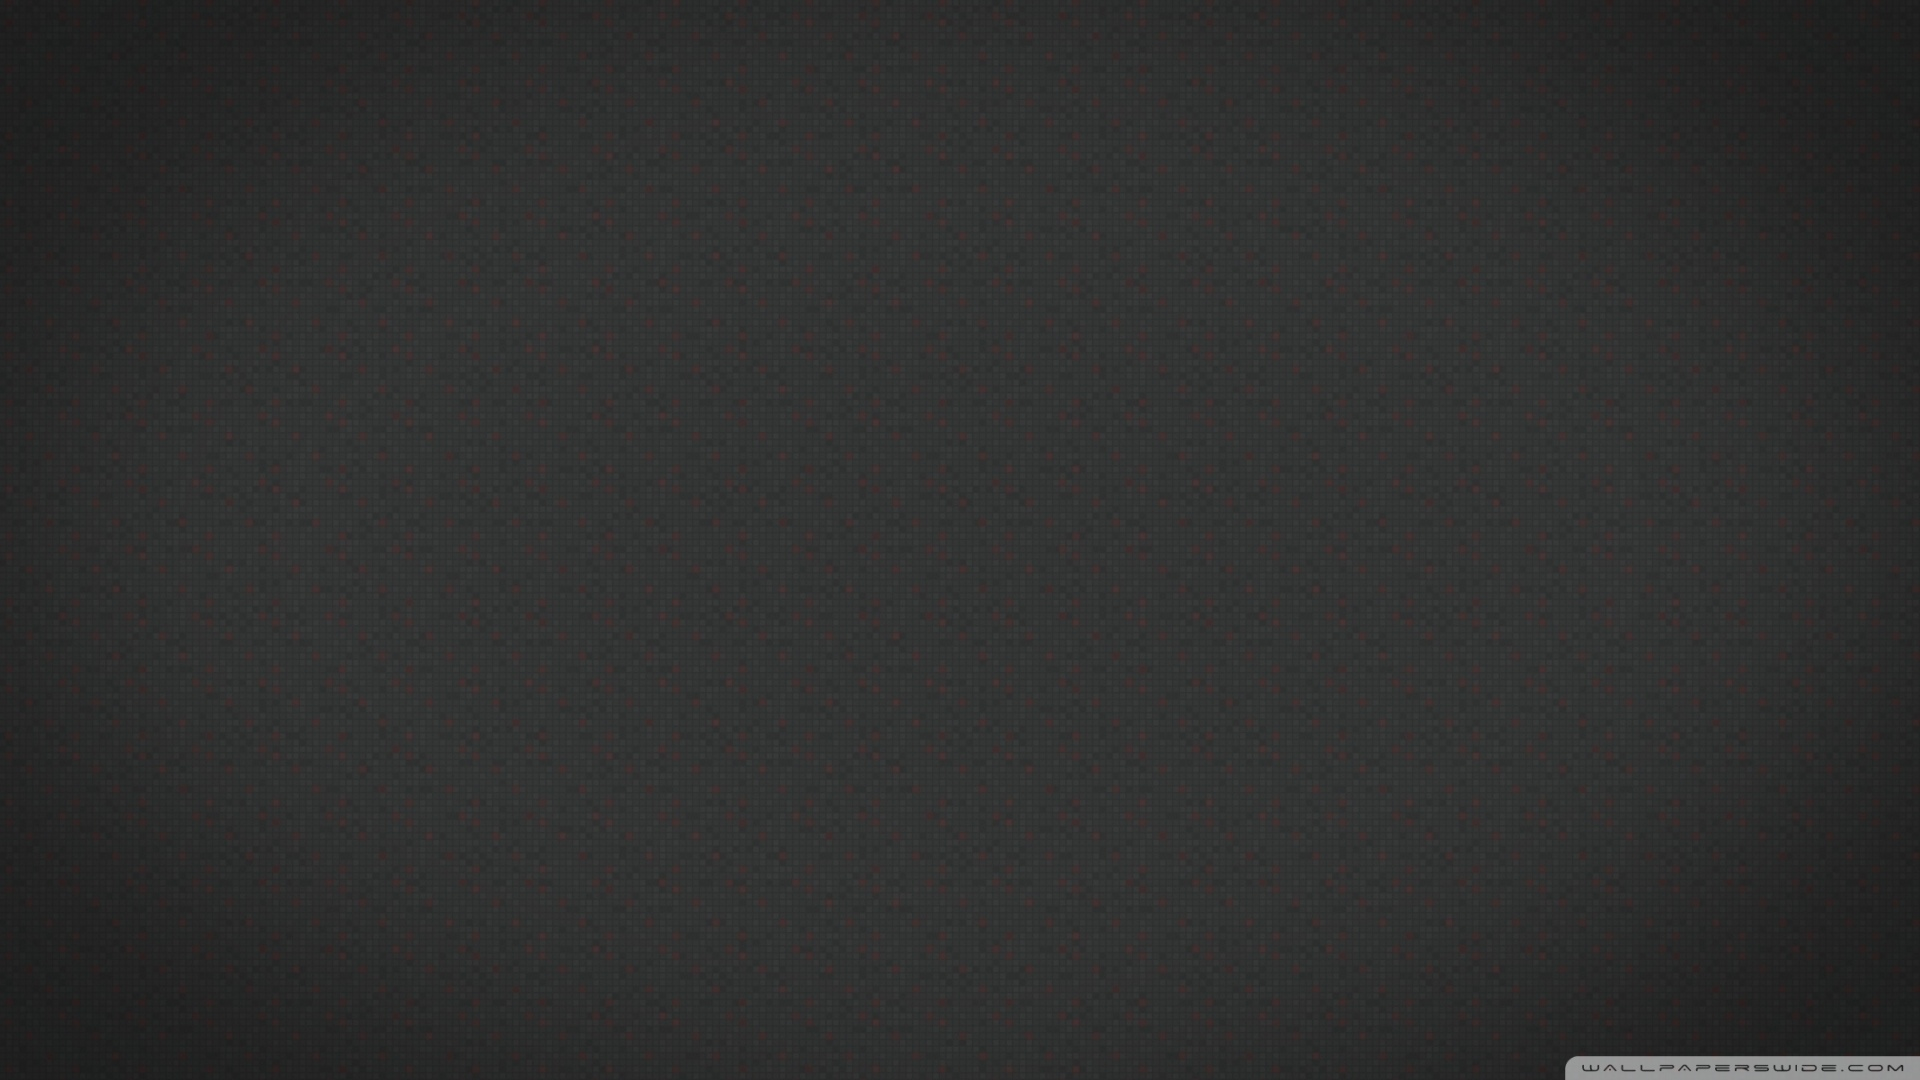 download 3840x2160 gray black - photo #1